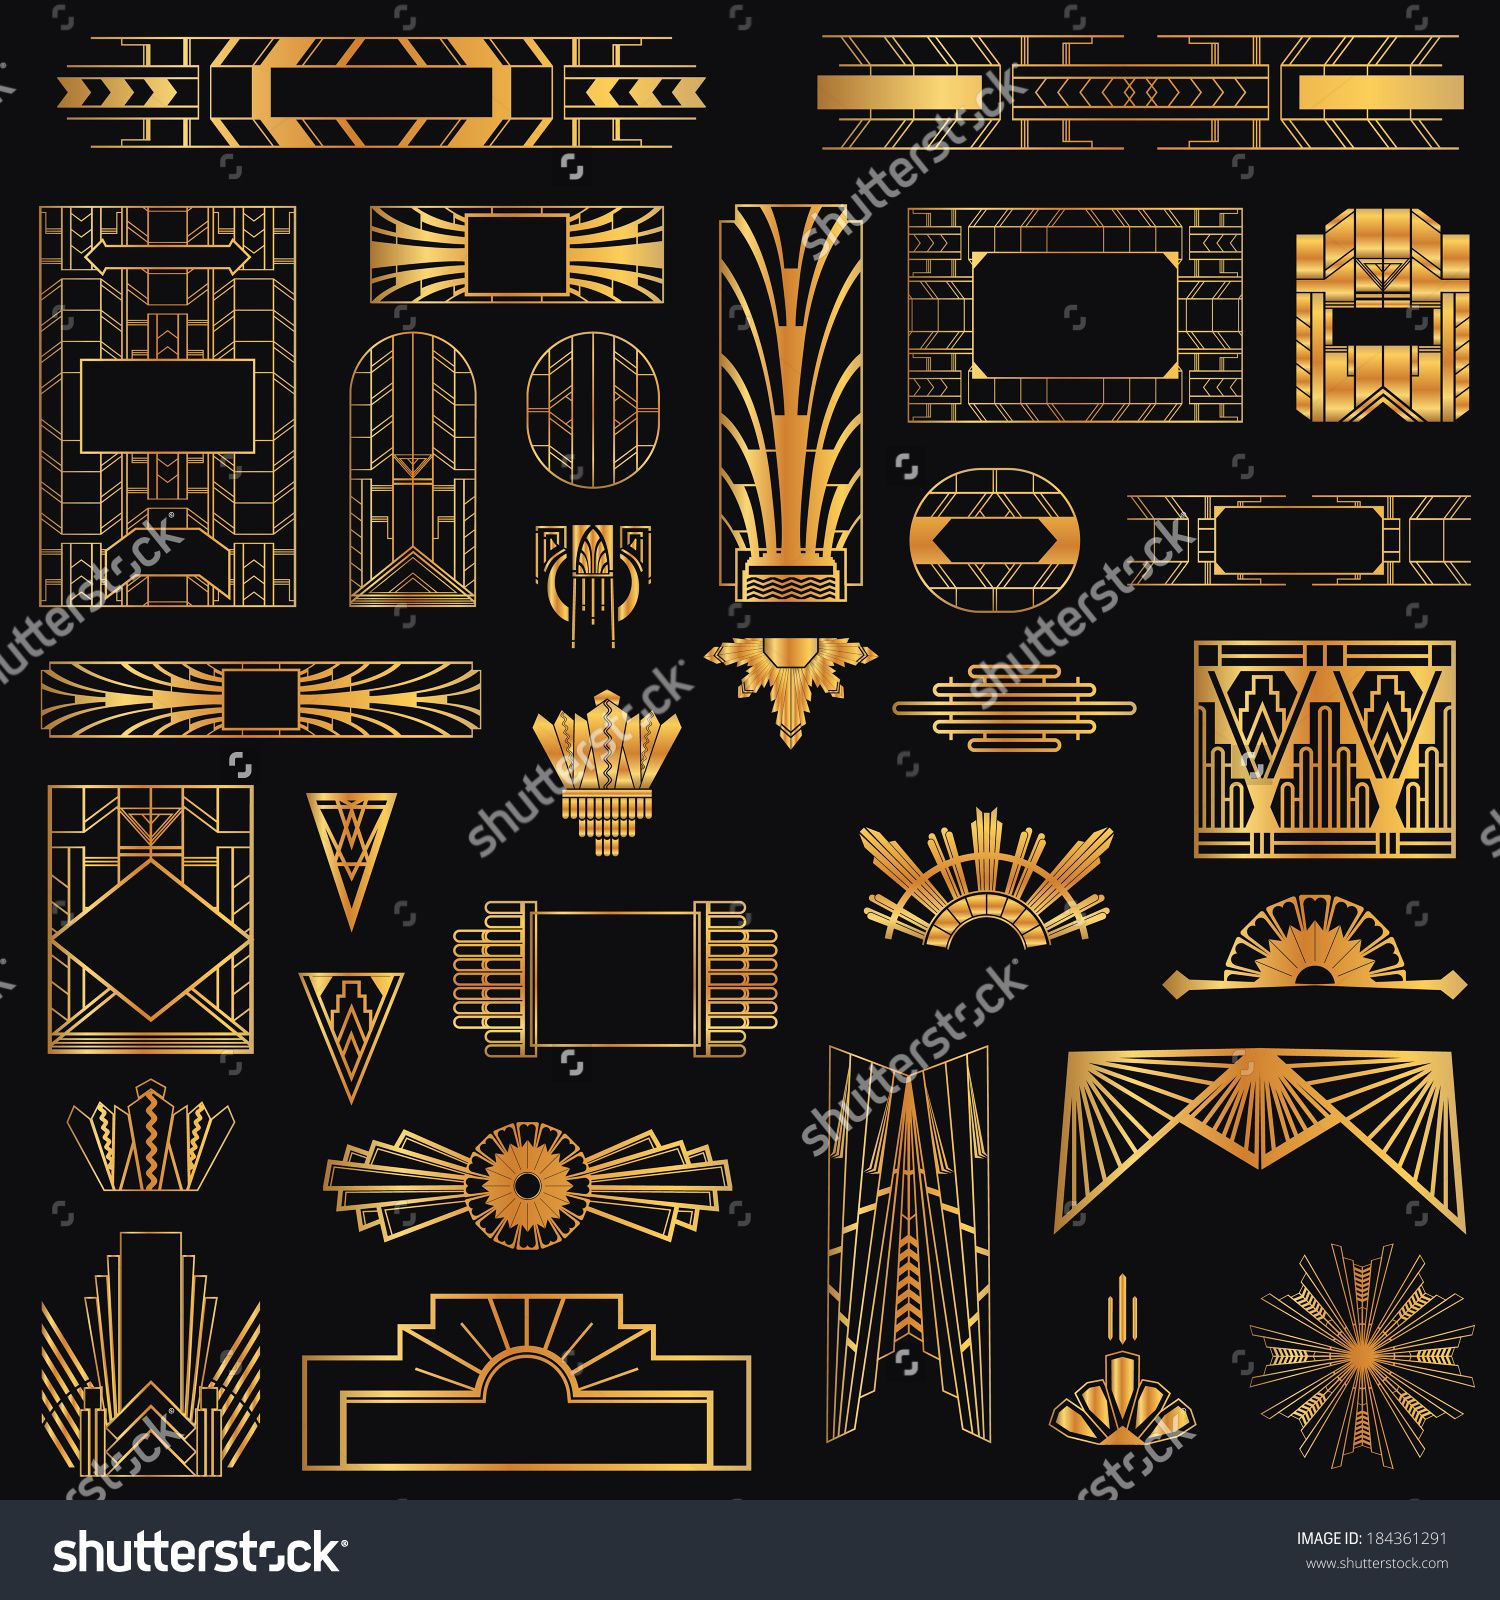 Art Deco Line Design : Art deco elements graphic designs google search